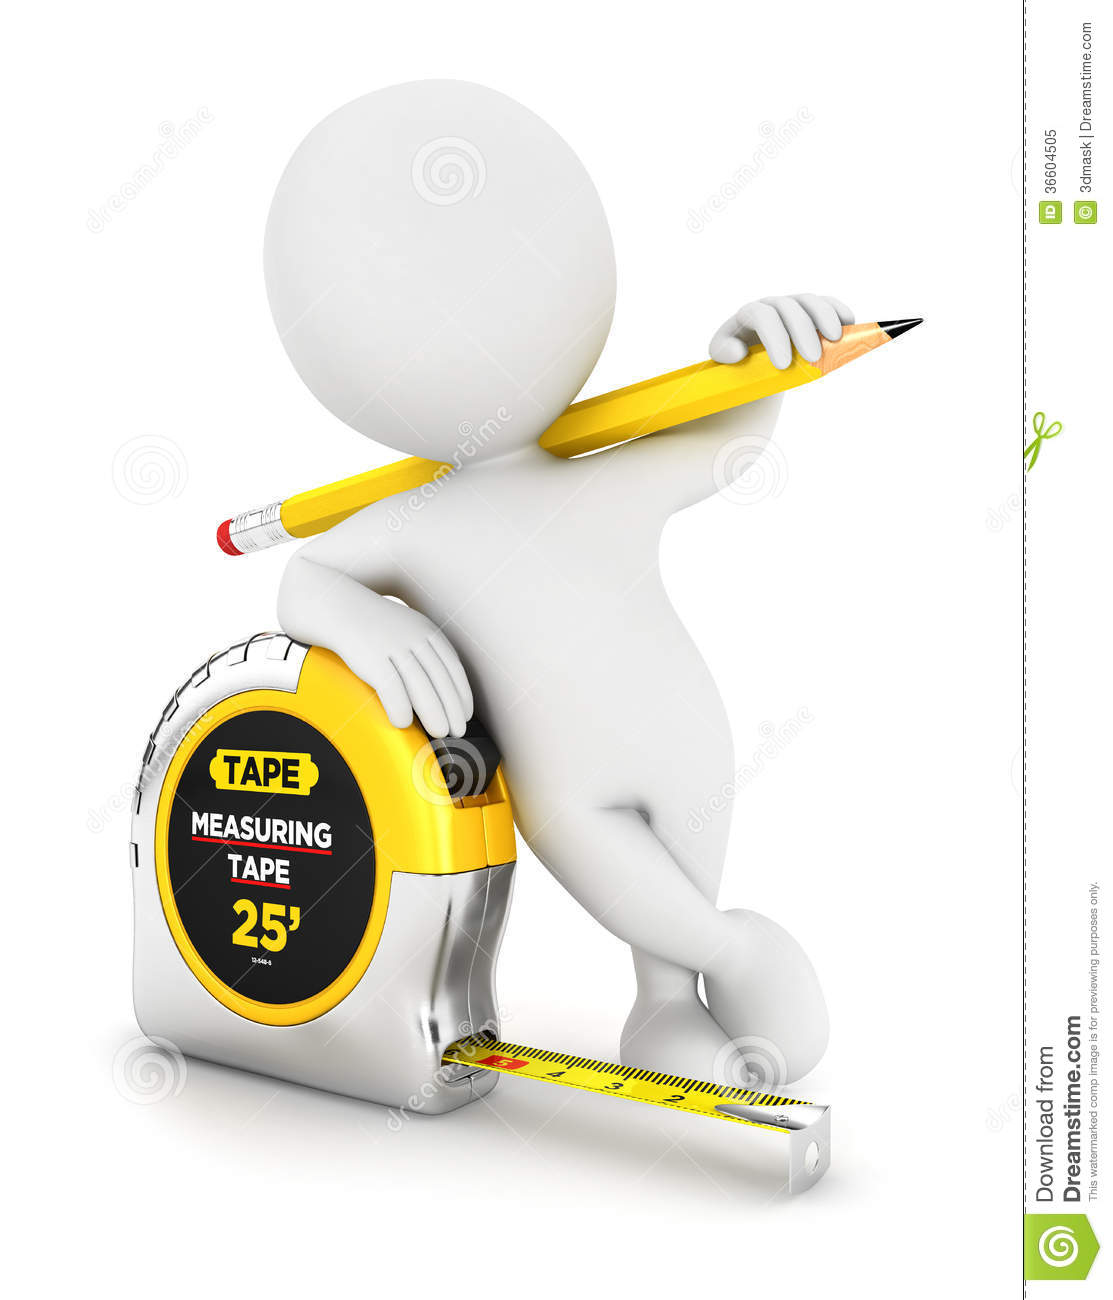 Design Blueprints 3d White People Measuring Tape Royalty Free Stock Photo